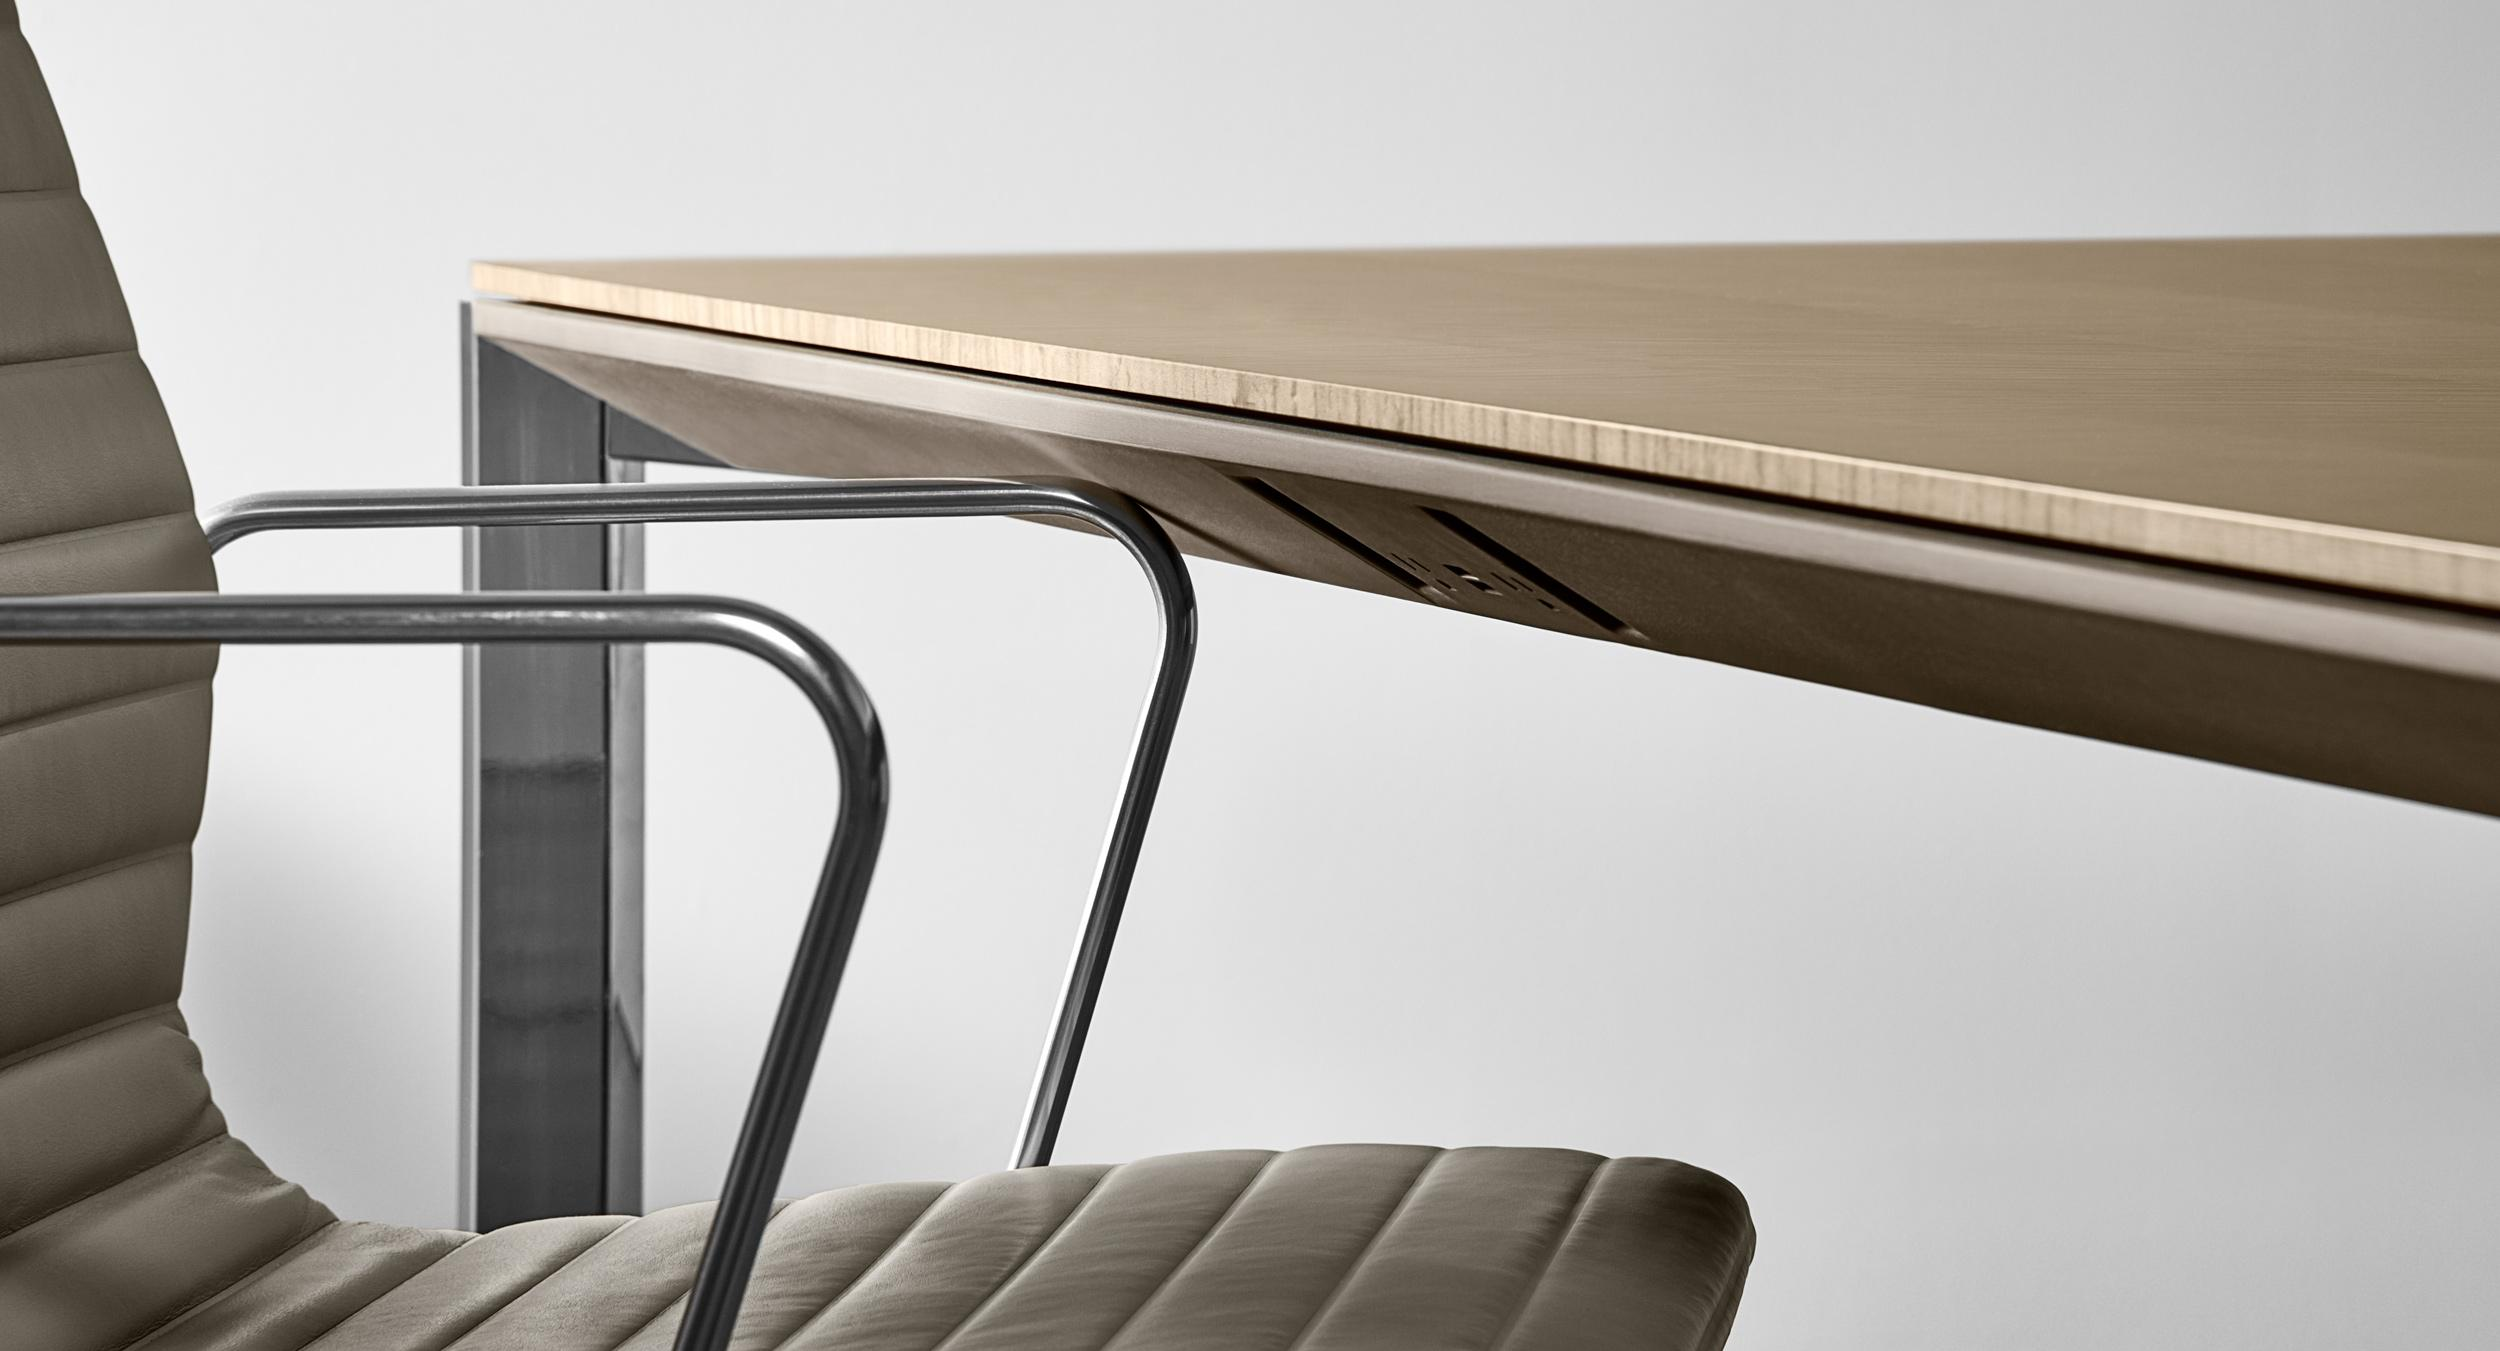 The revolutionary soft Halo edge protects both table and chair from damage.